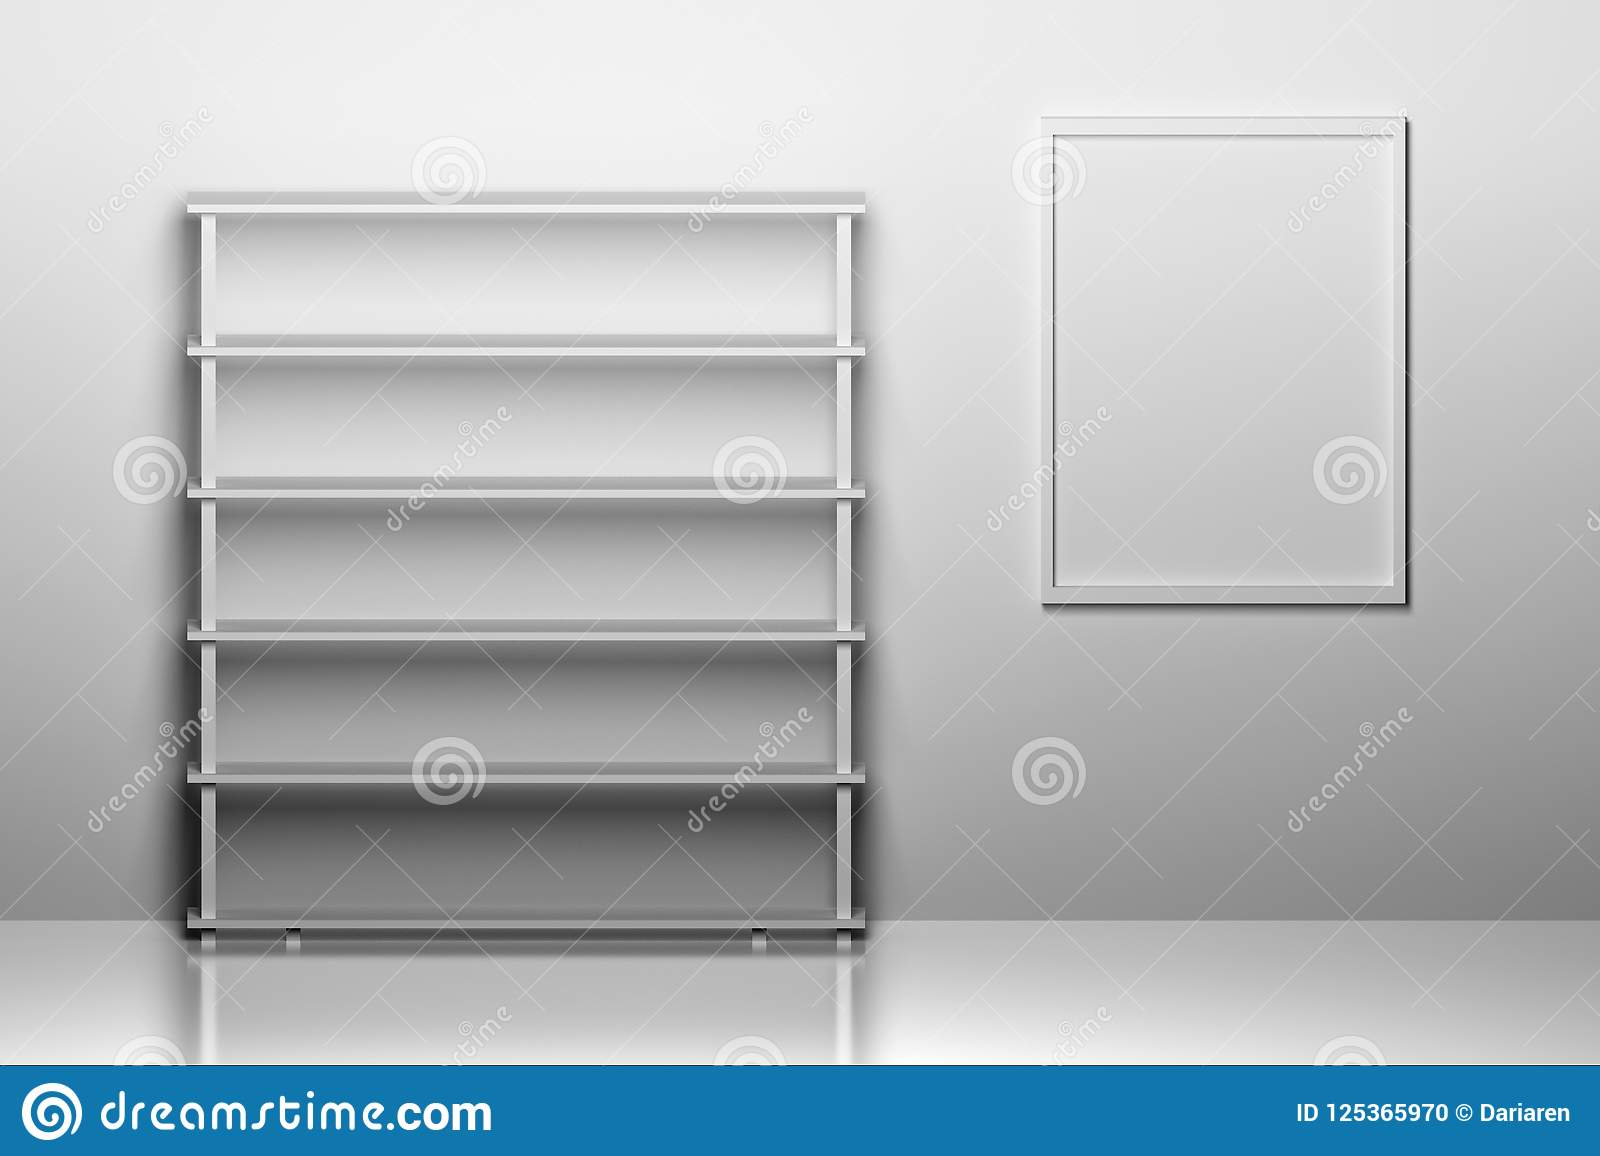 Empty book shelf with a frame for picture.